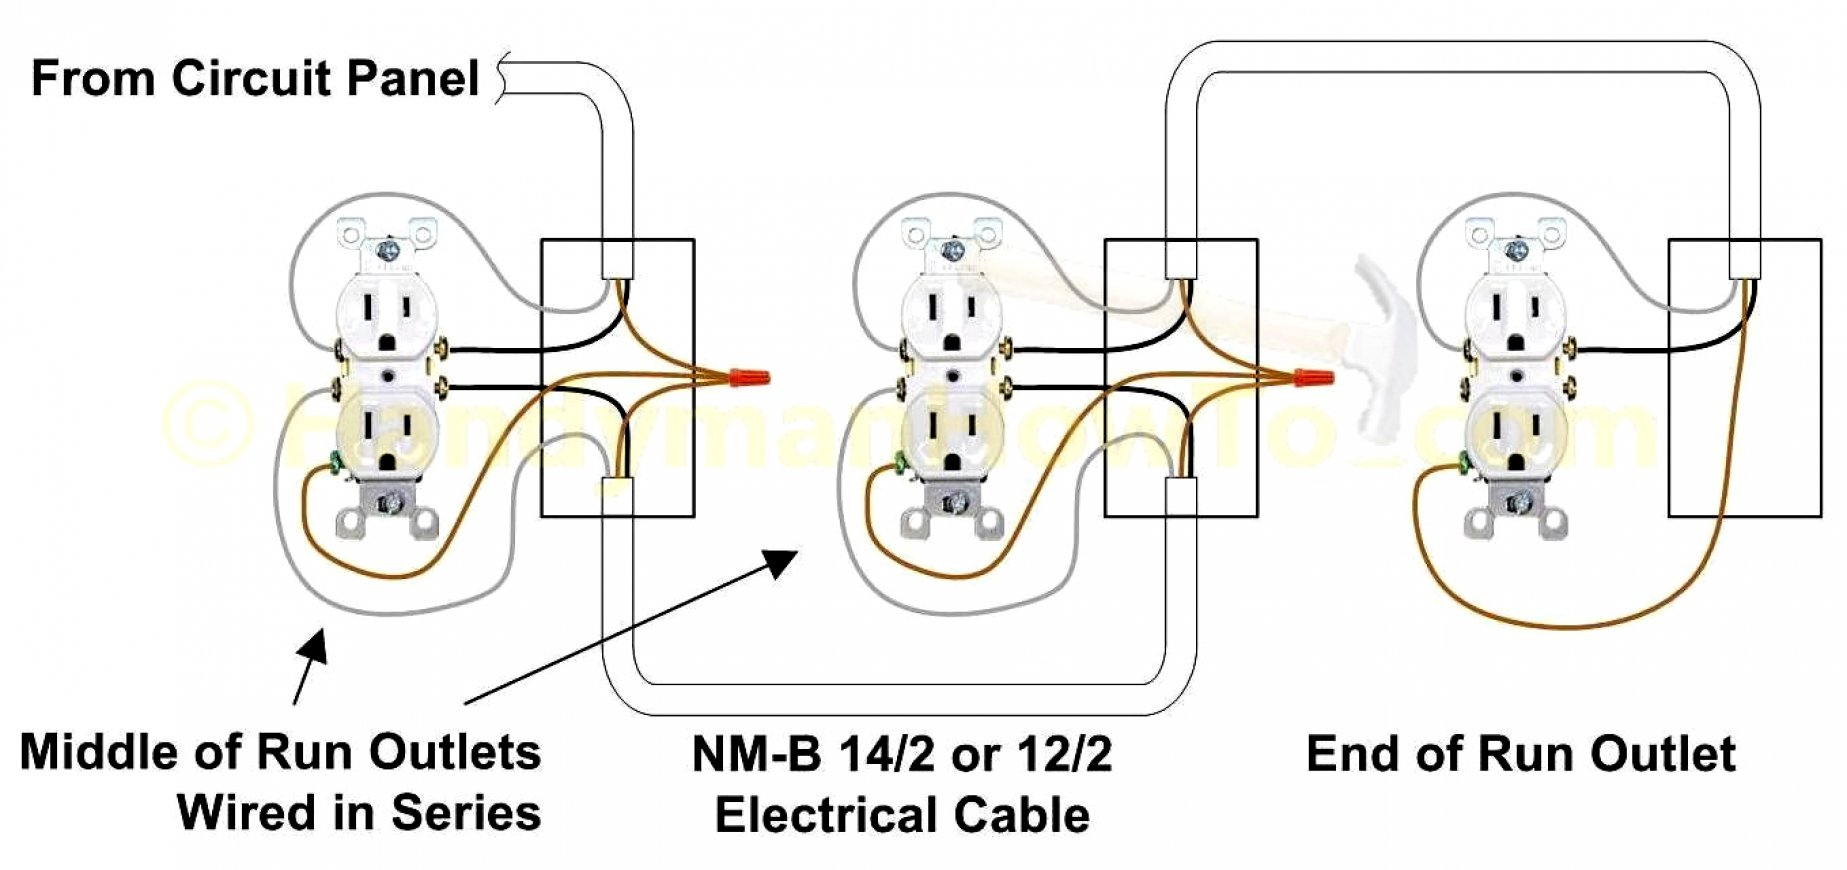 Home Plug Wiring | Wiring Diagram Libraries - Electrical Plug Wiring Diagram